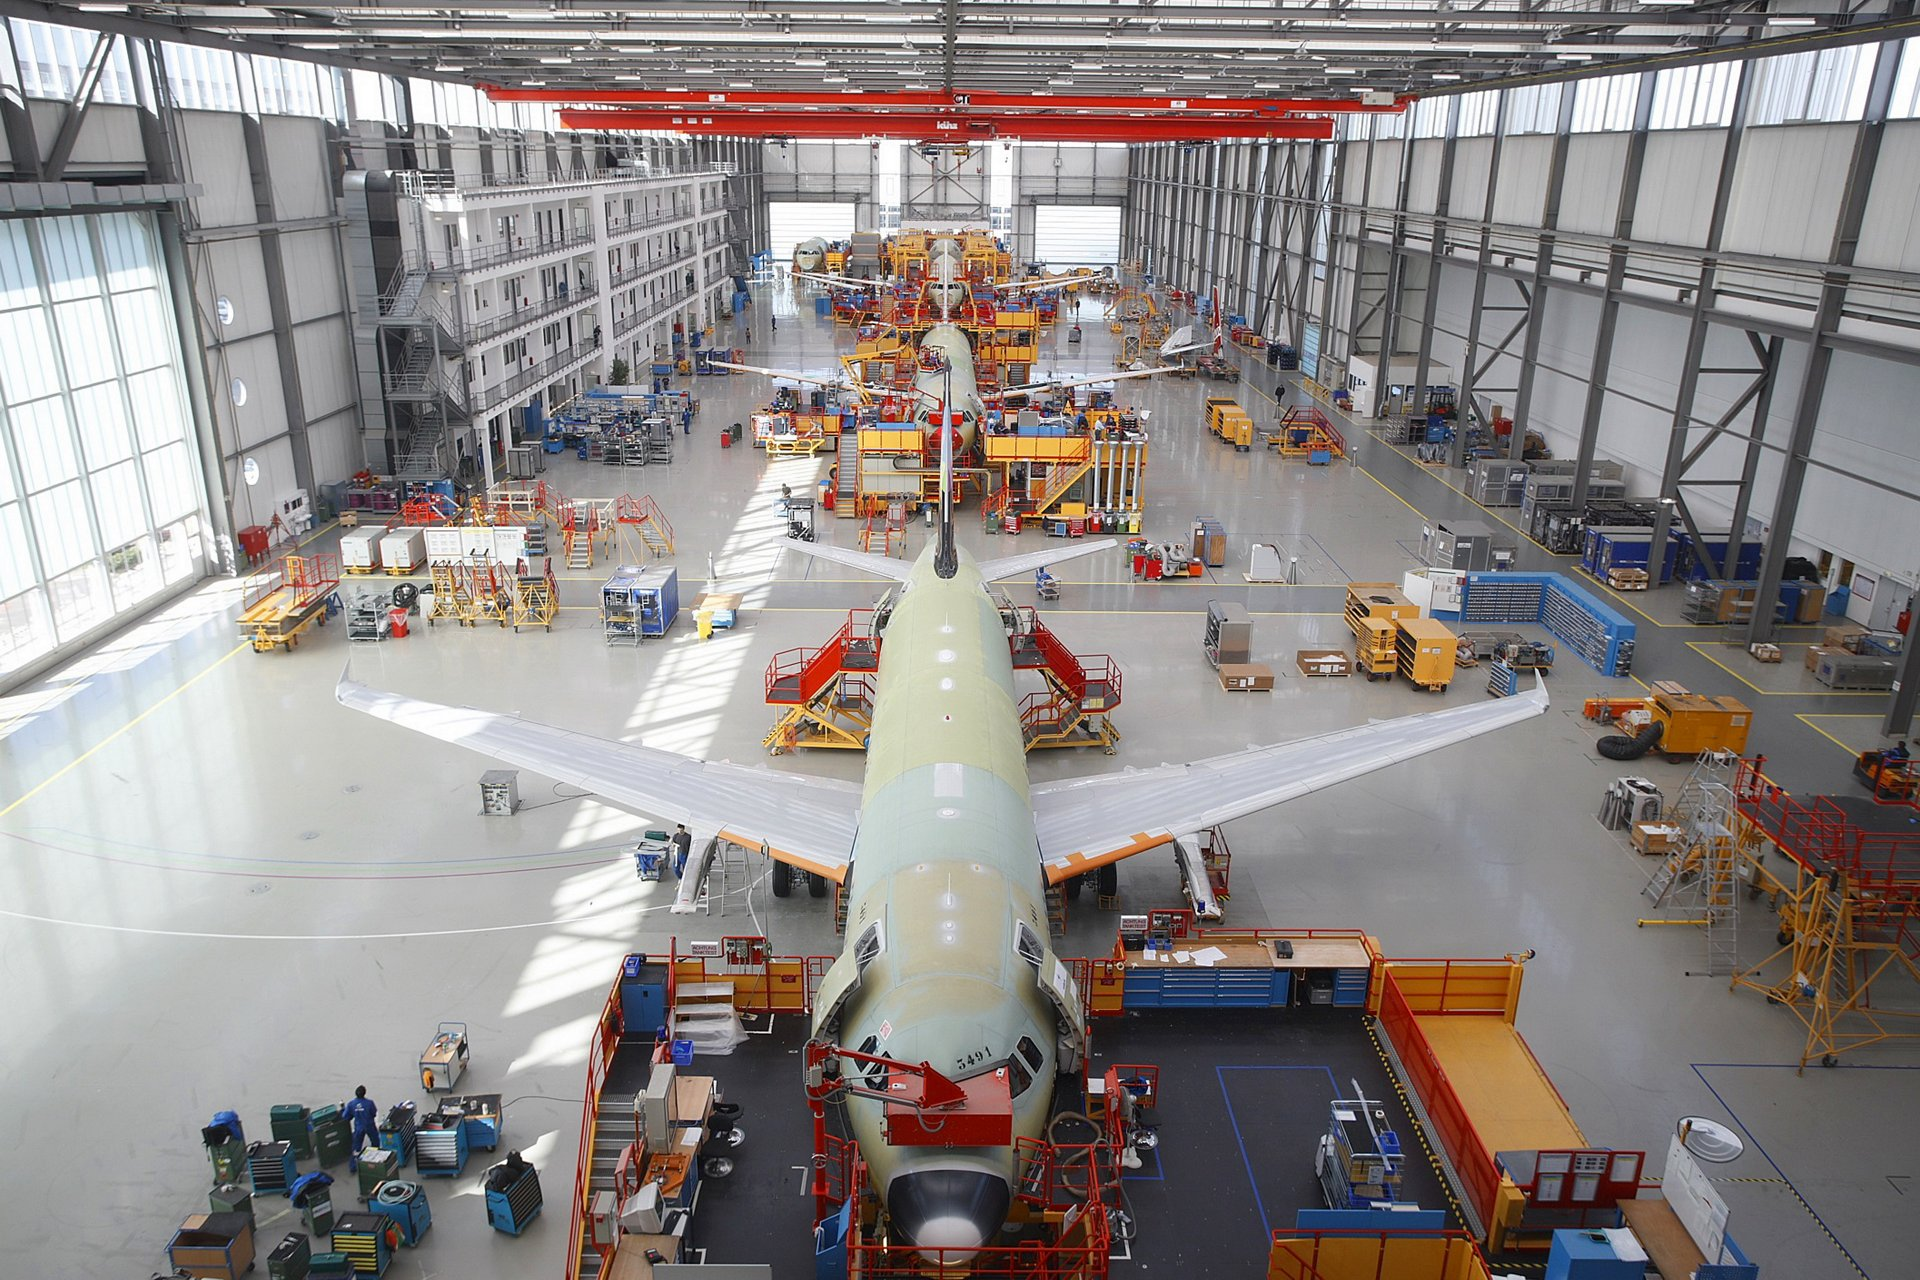 Boosted by continued strong customer demand for the A320 Family jetliners, AG真人计划 announces increased production rates of 38 aircraft per month, which will begin in August 2011, increasing to 40 per month in the first quarter of 2012  (30 July 2010)